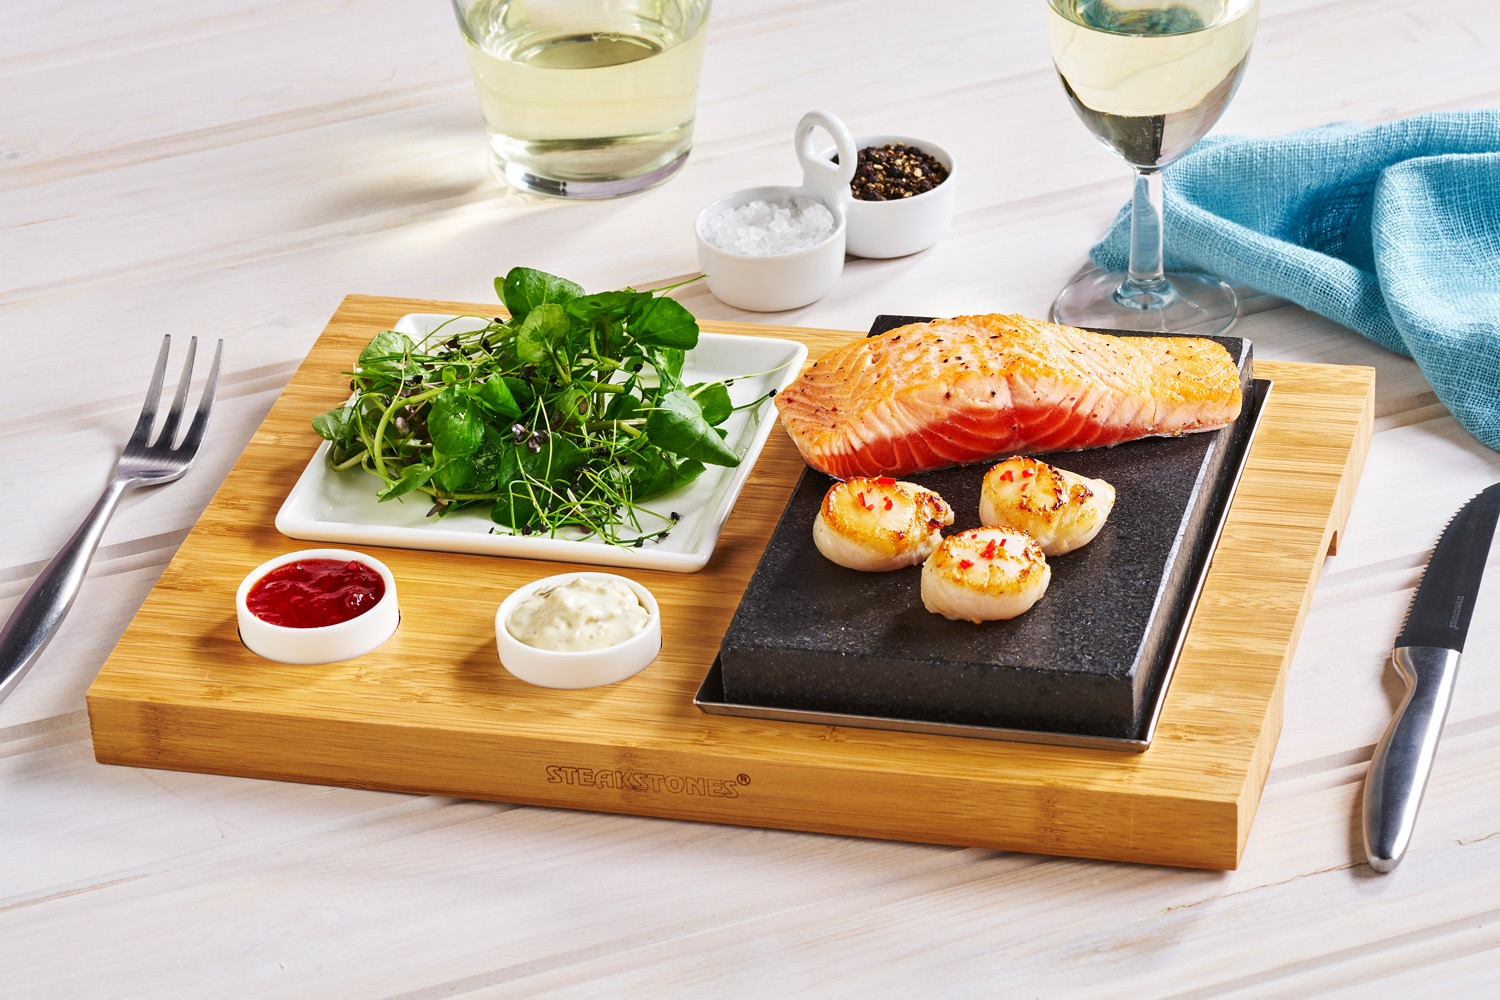 Salmon & Scallops with a Salad Side, Tartare and Chilli Dips